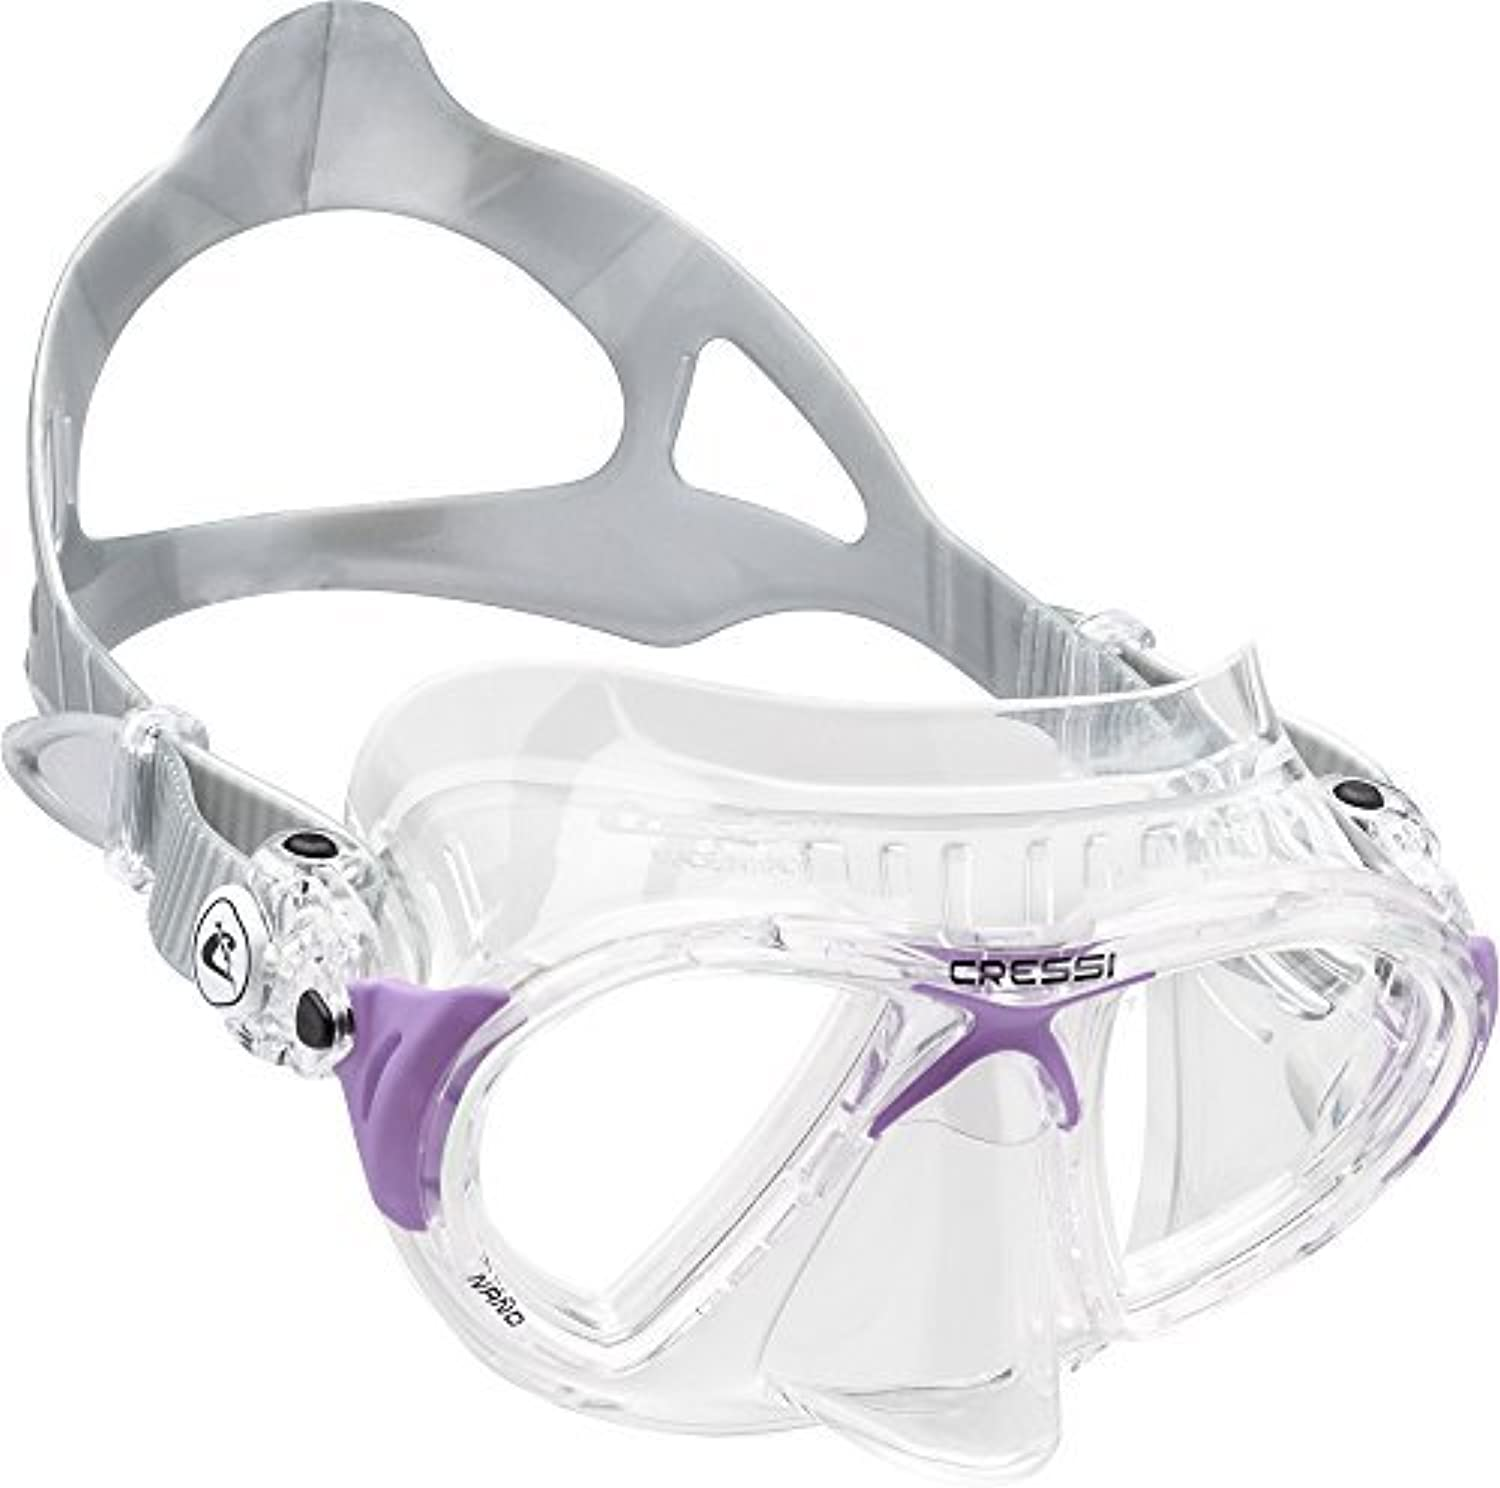 Cressi NANO Expert Adult Compact Mask for Freediving & Scuba Diving, Clear Lilac